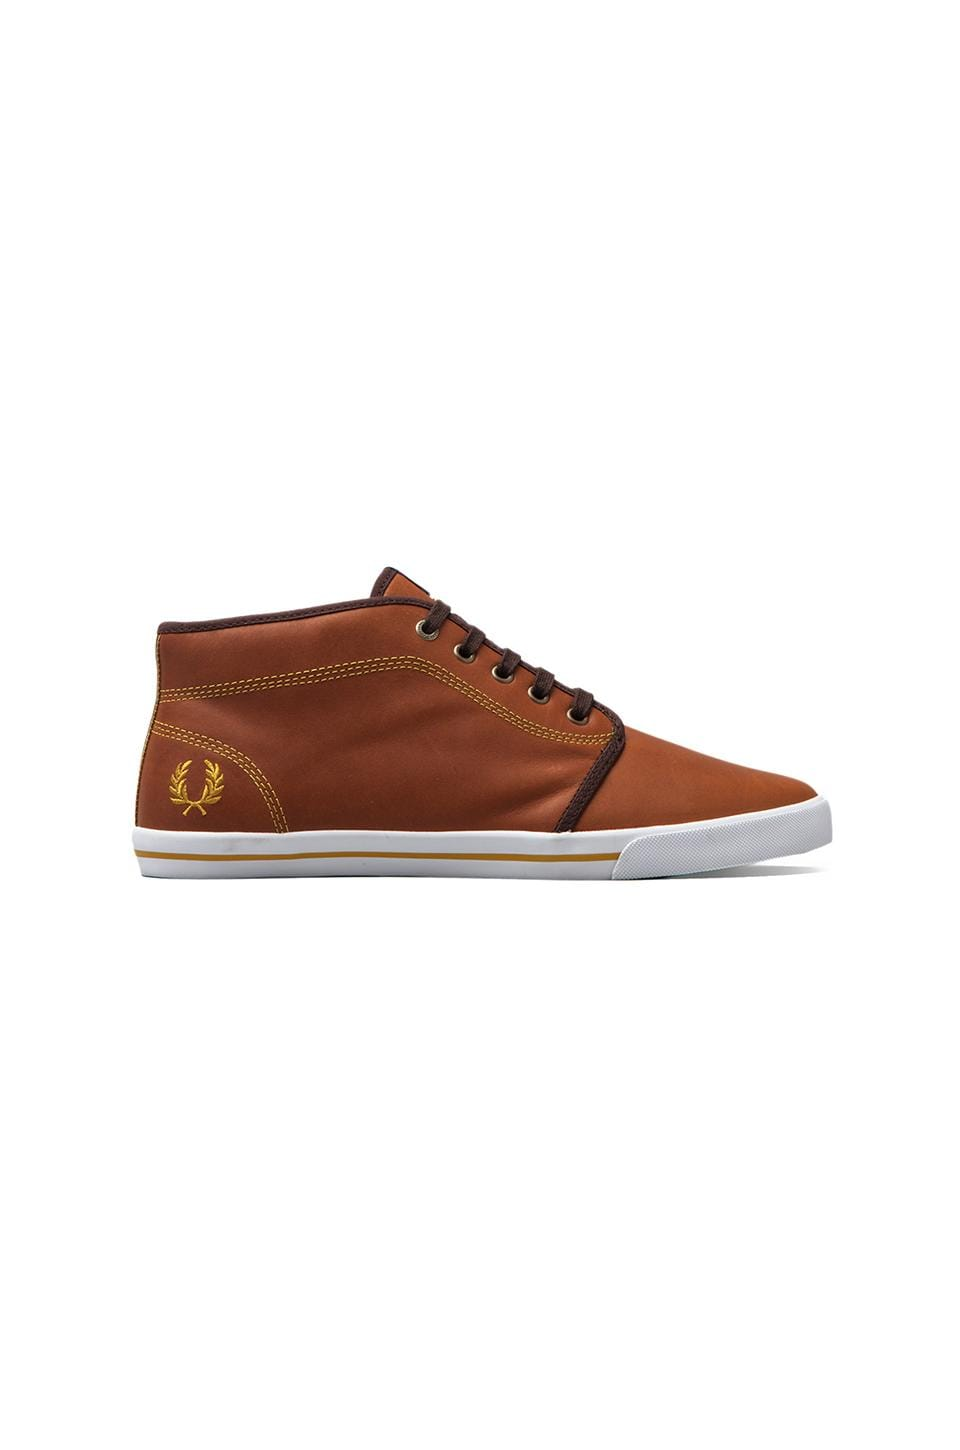 Fred Perry Fletcher Leather in Dark Tan/Mustard